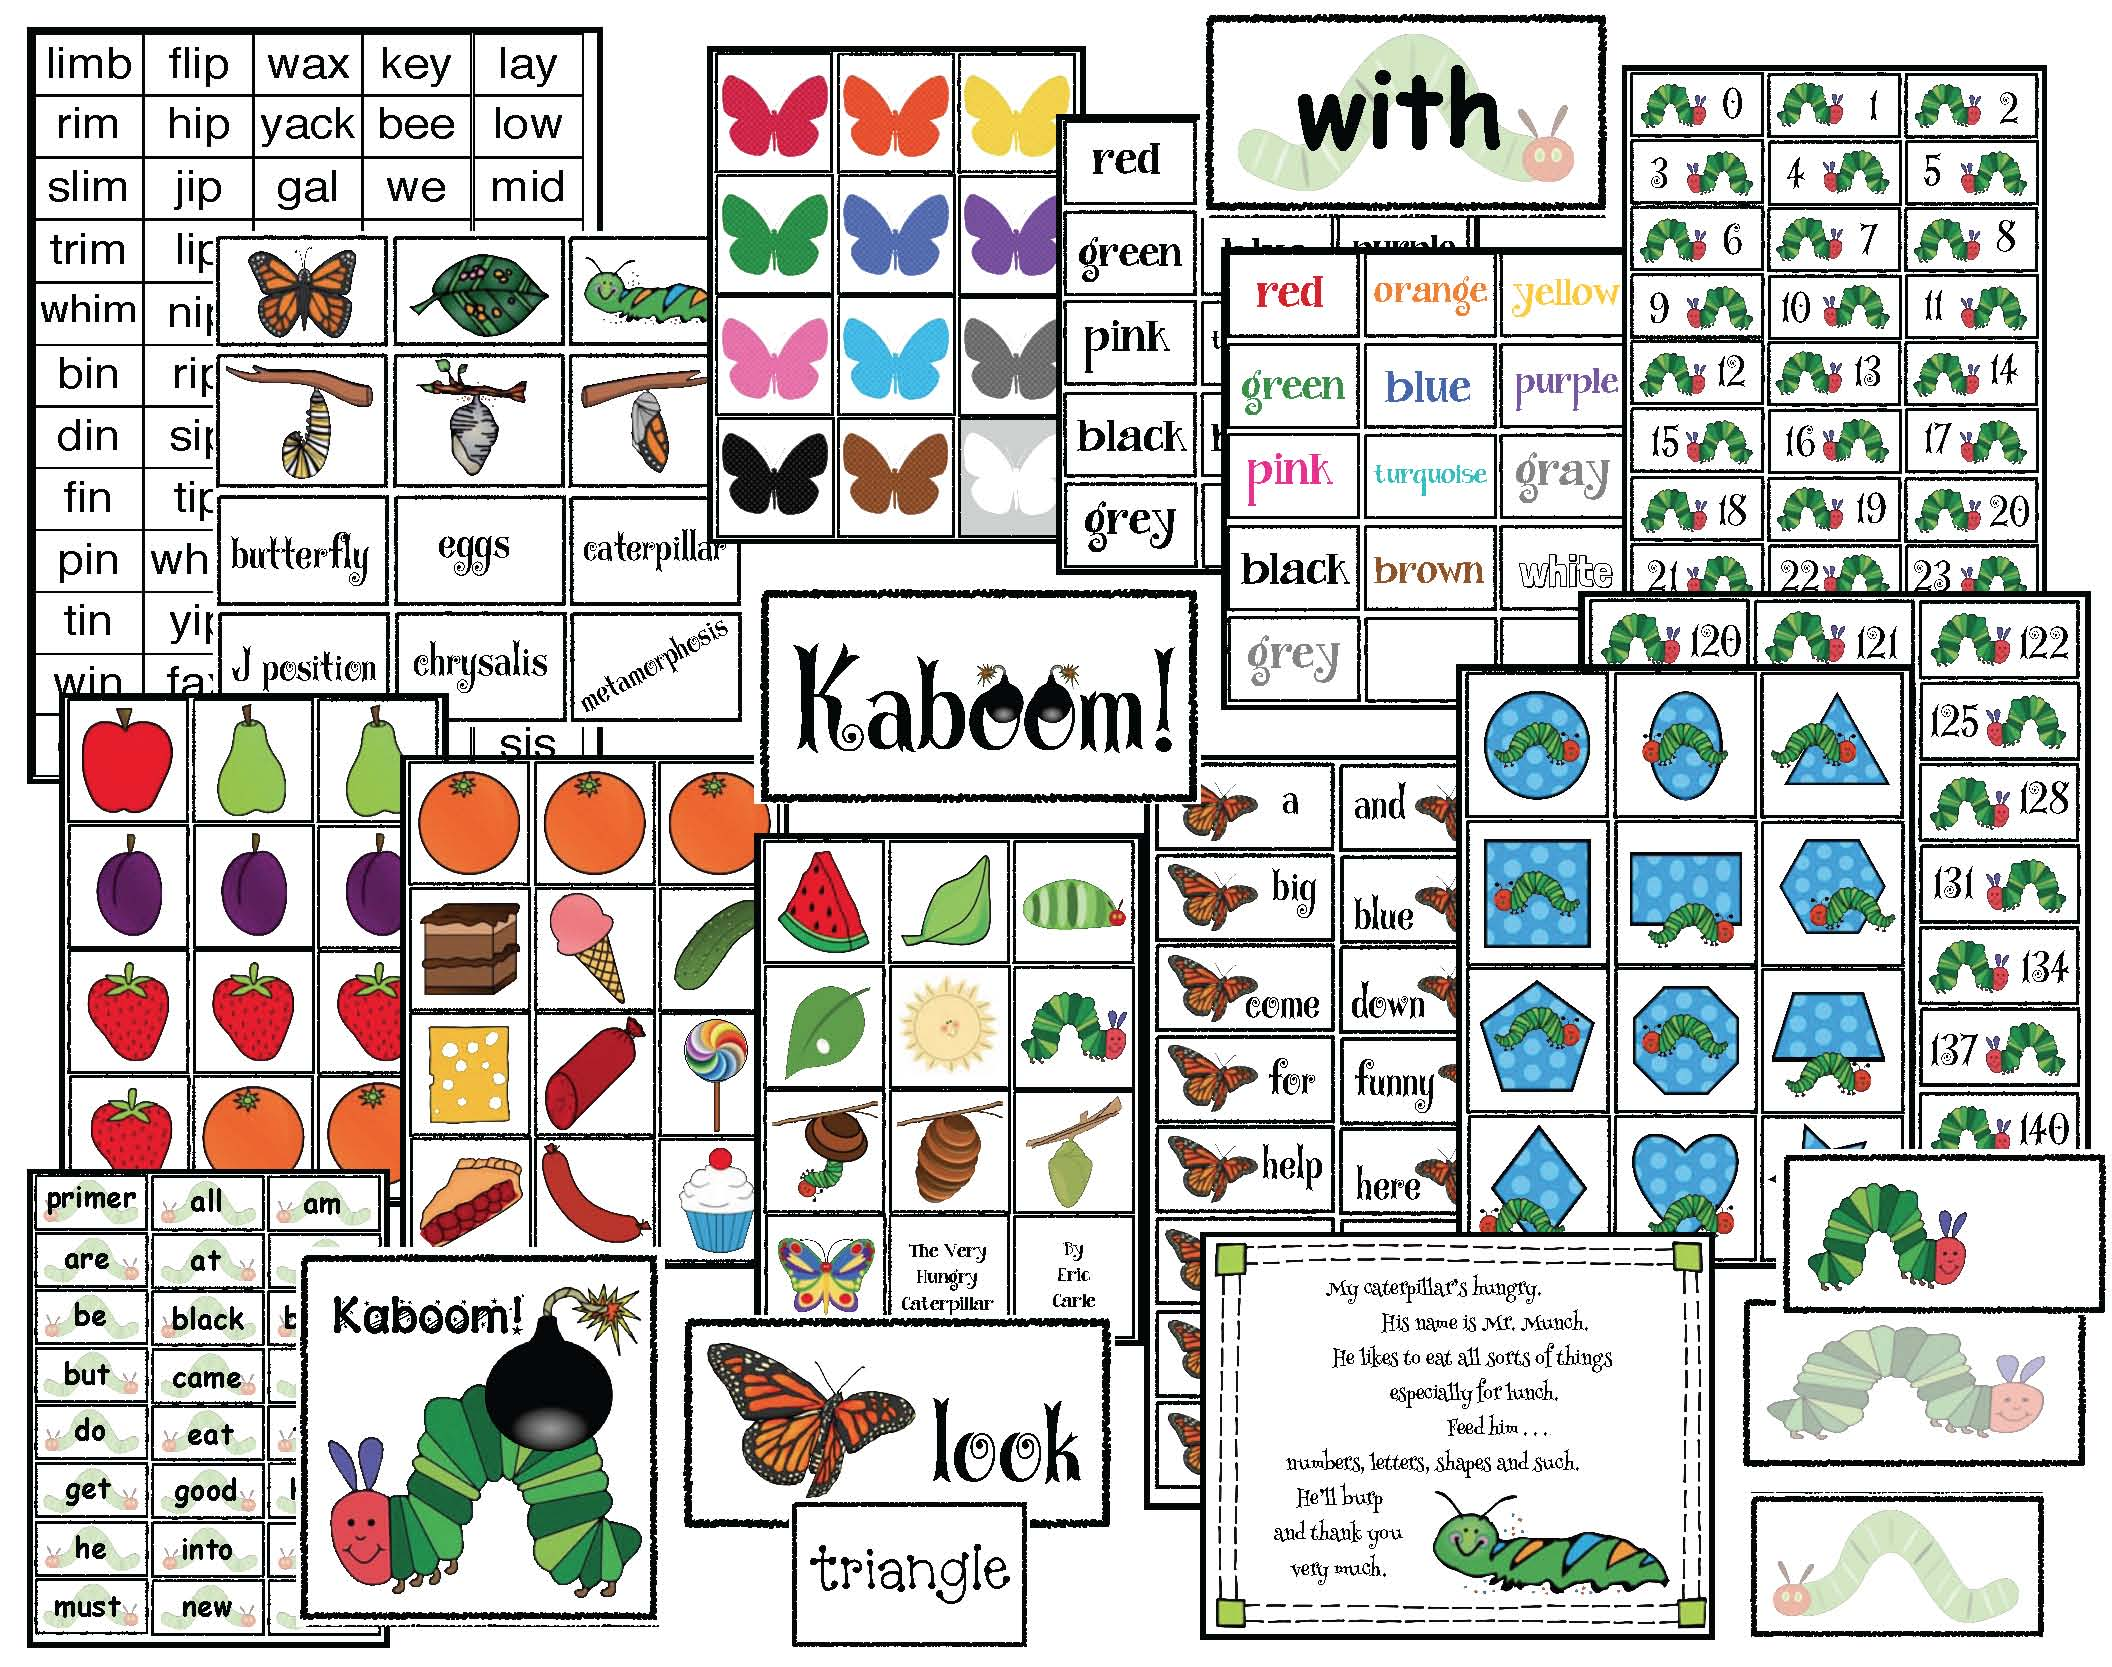 caterpillar activities, caterpillar crafts, the very hungry caterpillar activities, 2D shape activities, alphabet cards, days of the week activities, Mother's Day activities, mothers day crafts